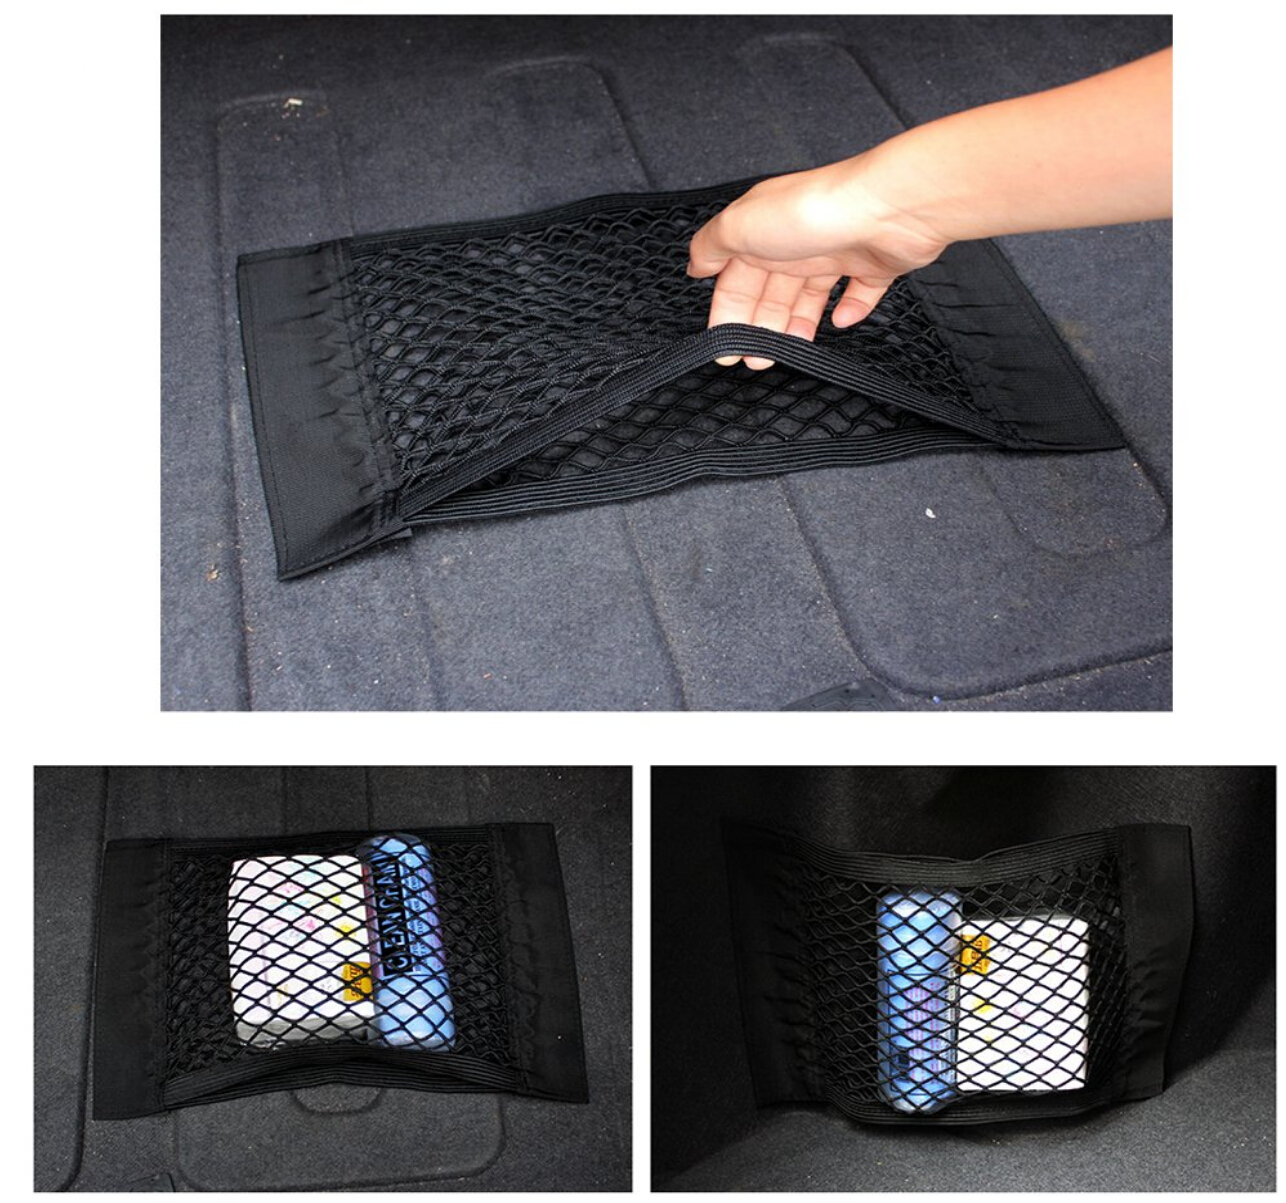 Car Trunk Box Storage Bag Mesh Net Bag Sticker For BMW F20 F21 F31 G31 F11 E61 E60 X1 F48 X2 F39 X3 G01 F25 E83 Accessories-in Car Stickers from Automobiles & Motorcycles